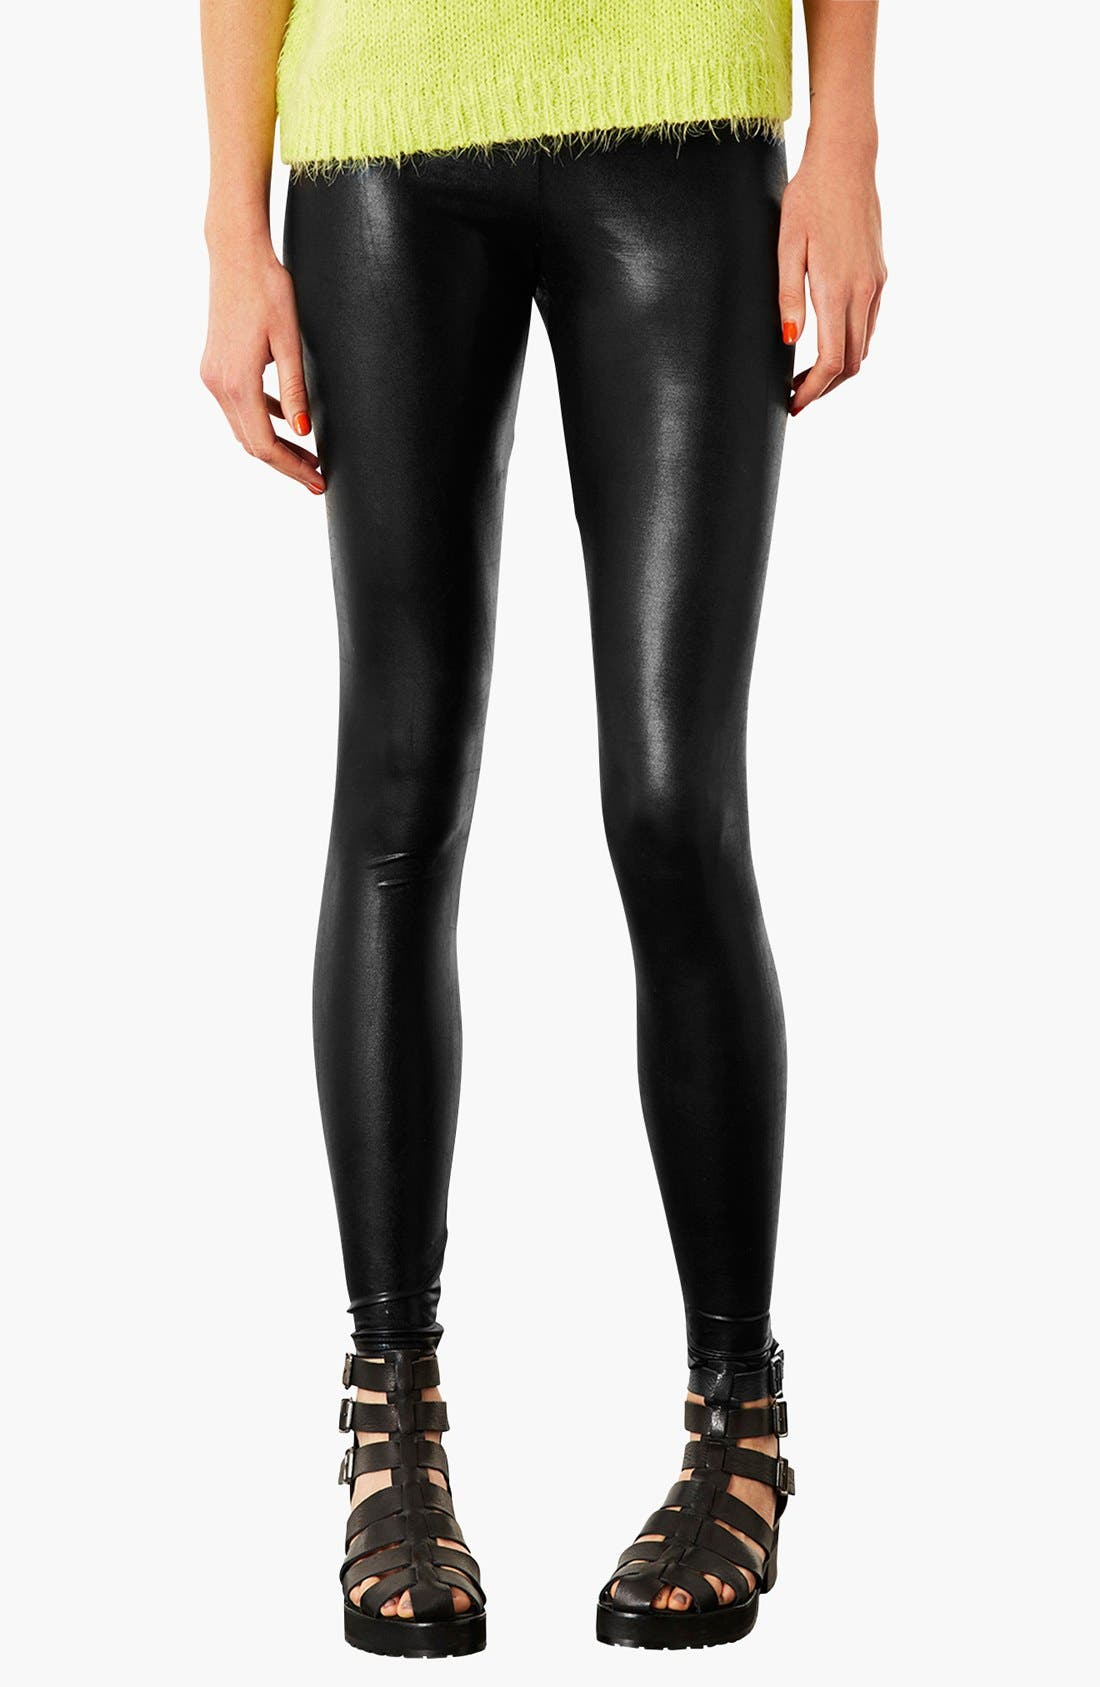 Main Image - Topshop High Shine Leggings